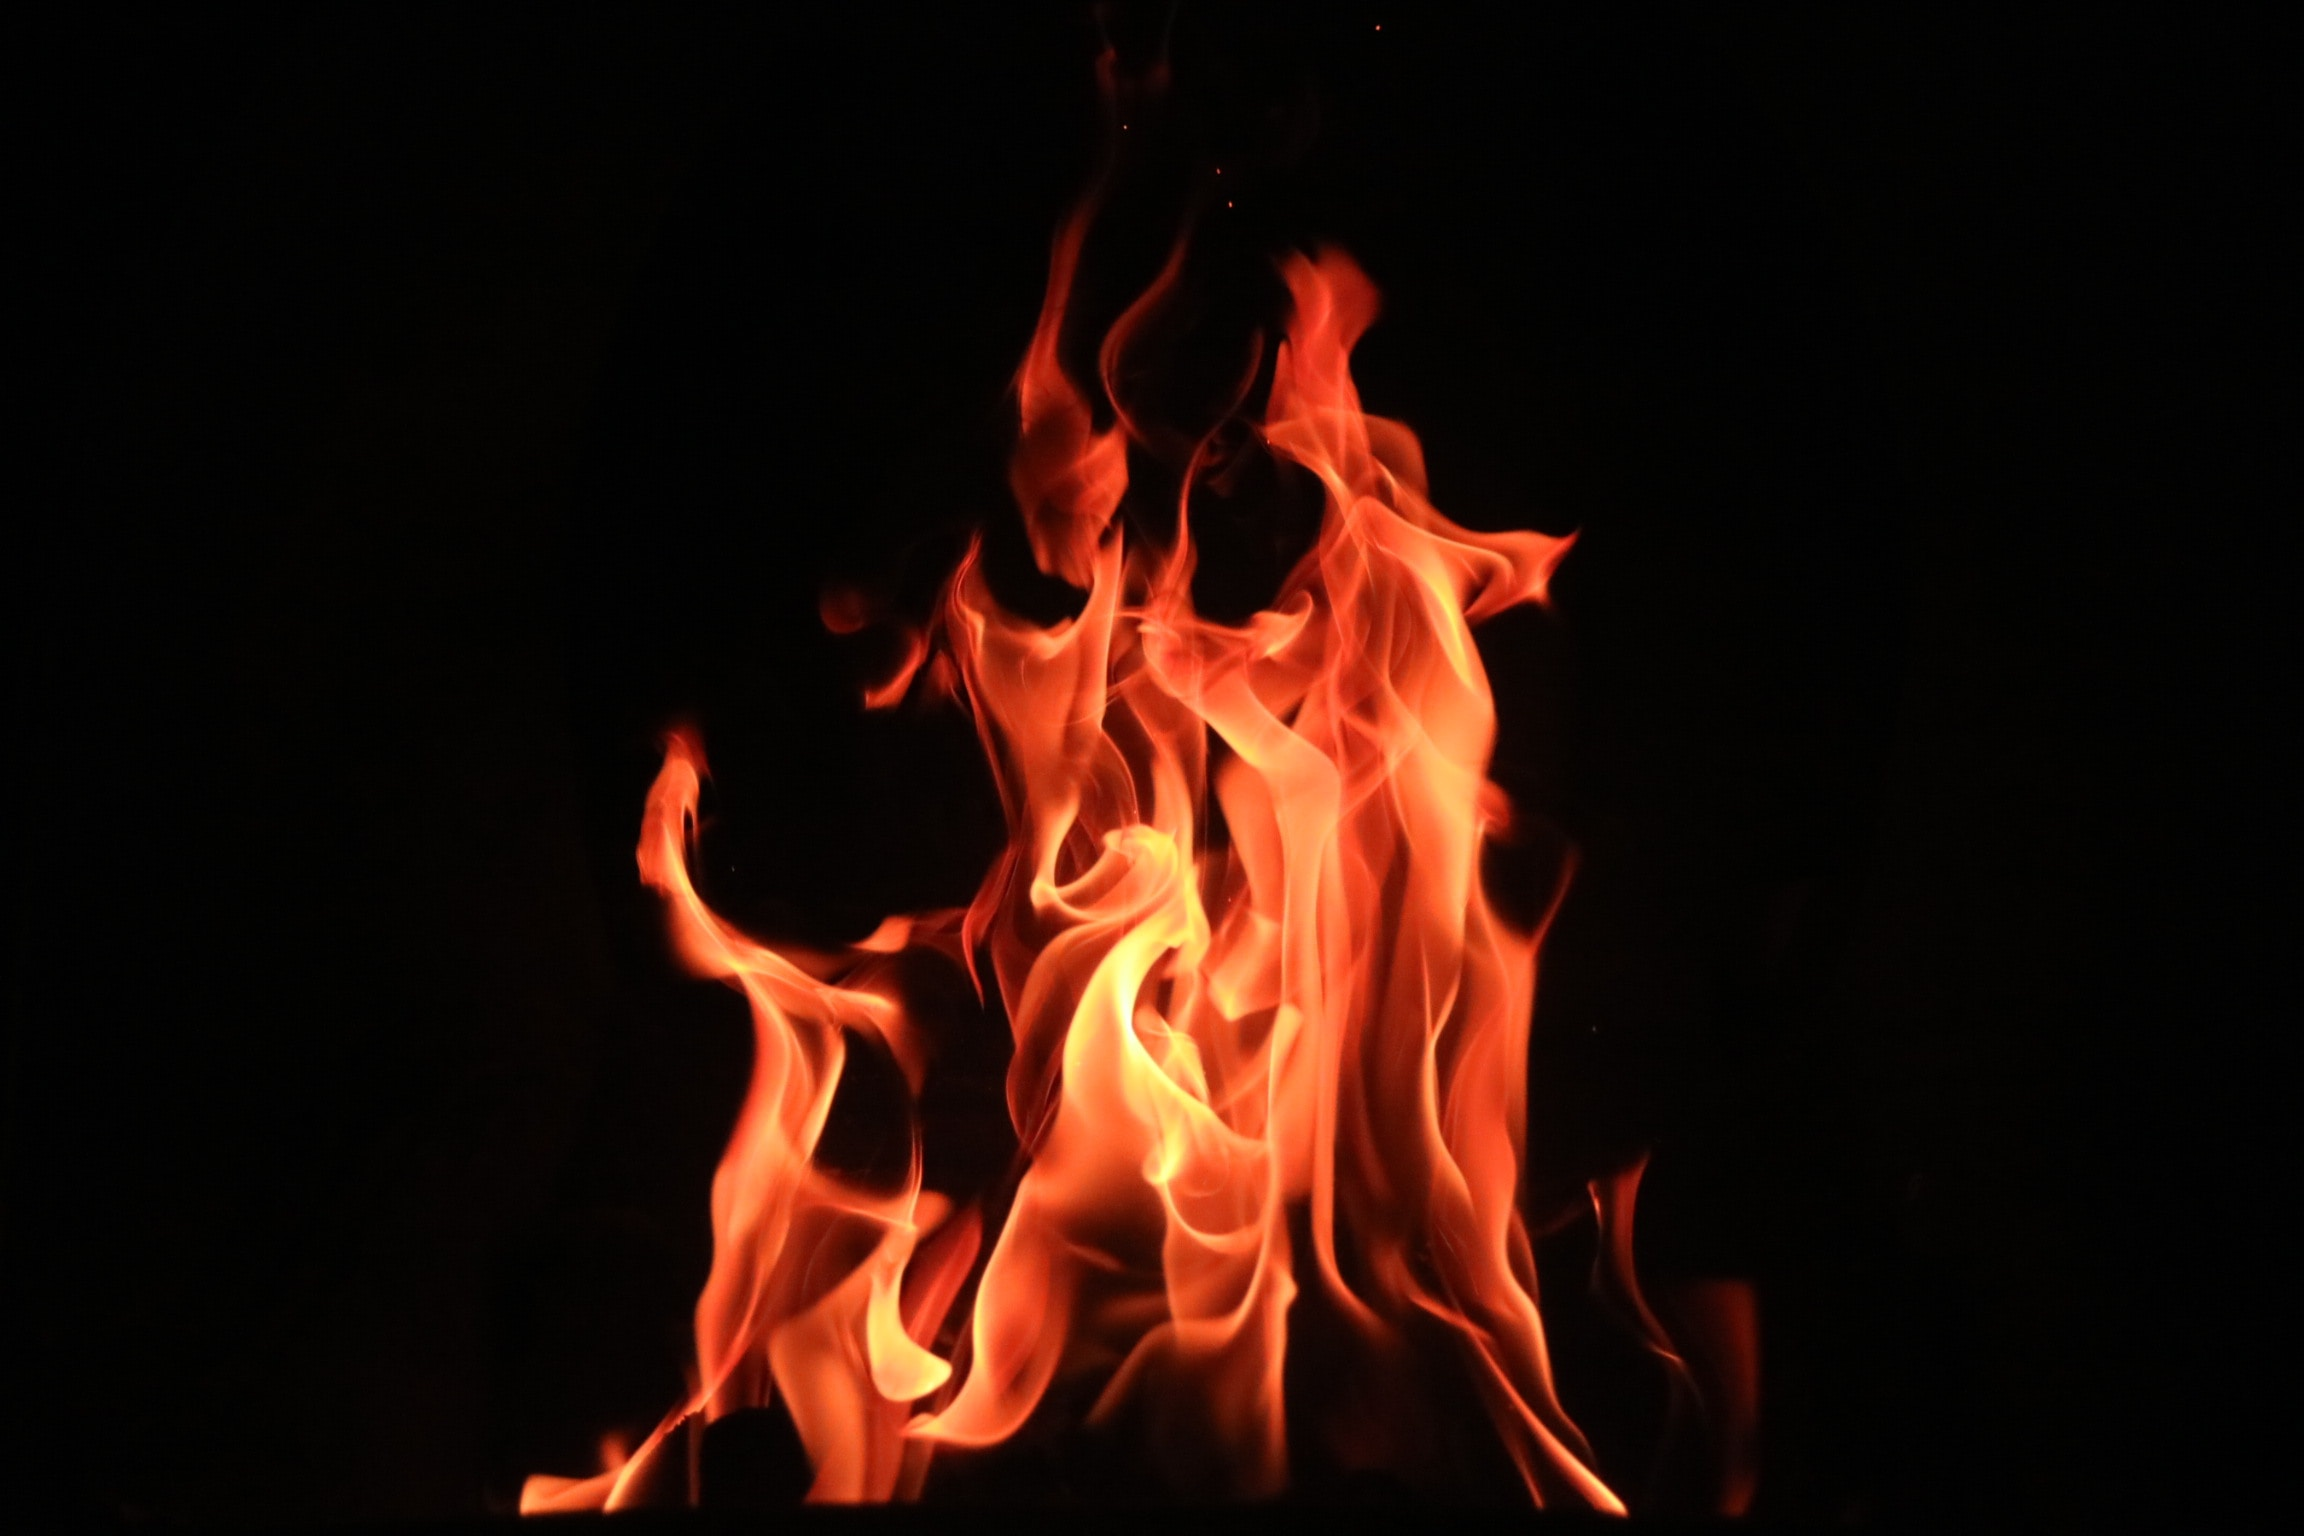 Image of a fire